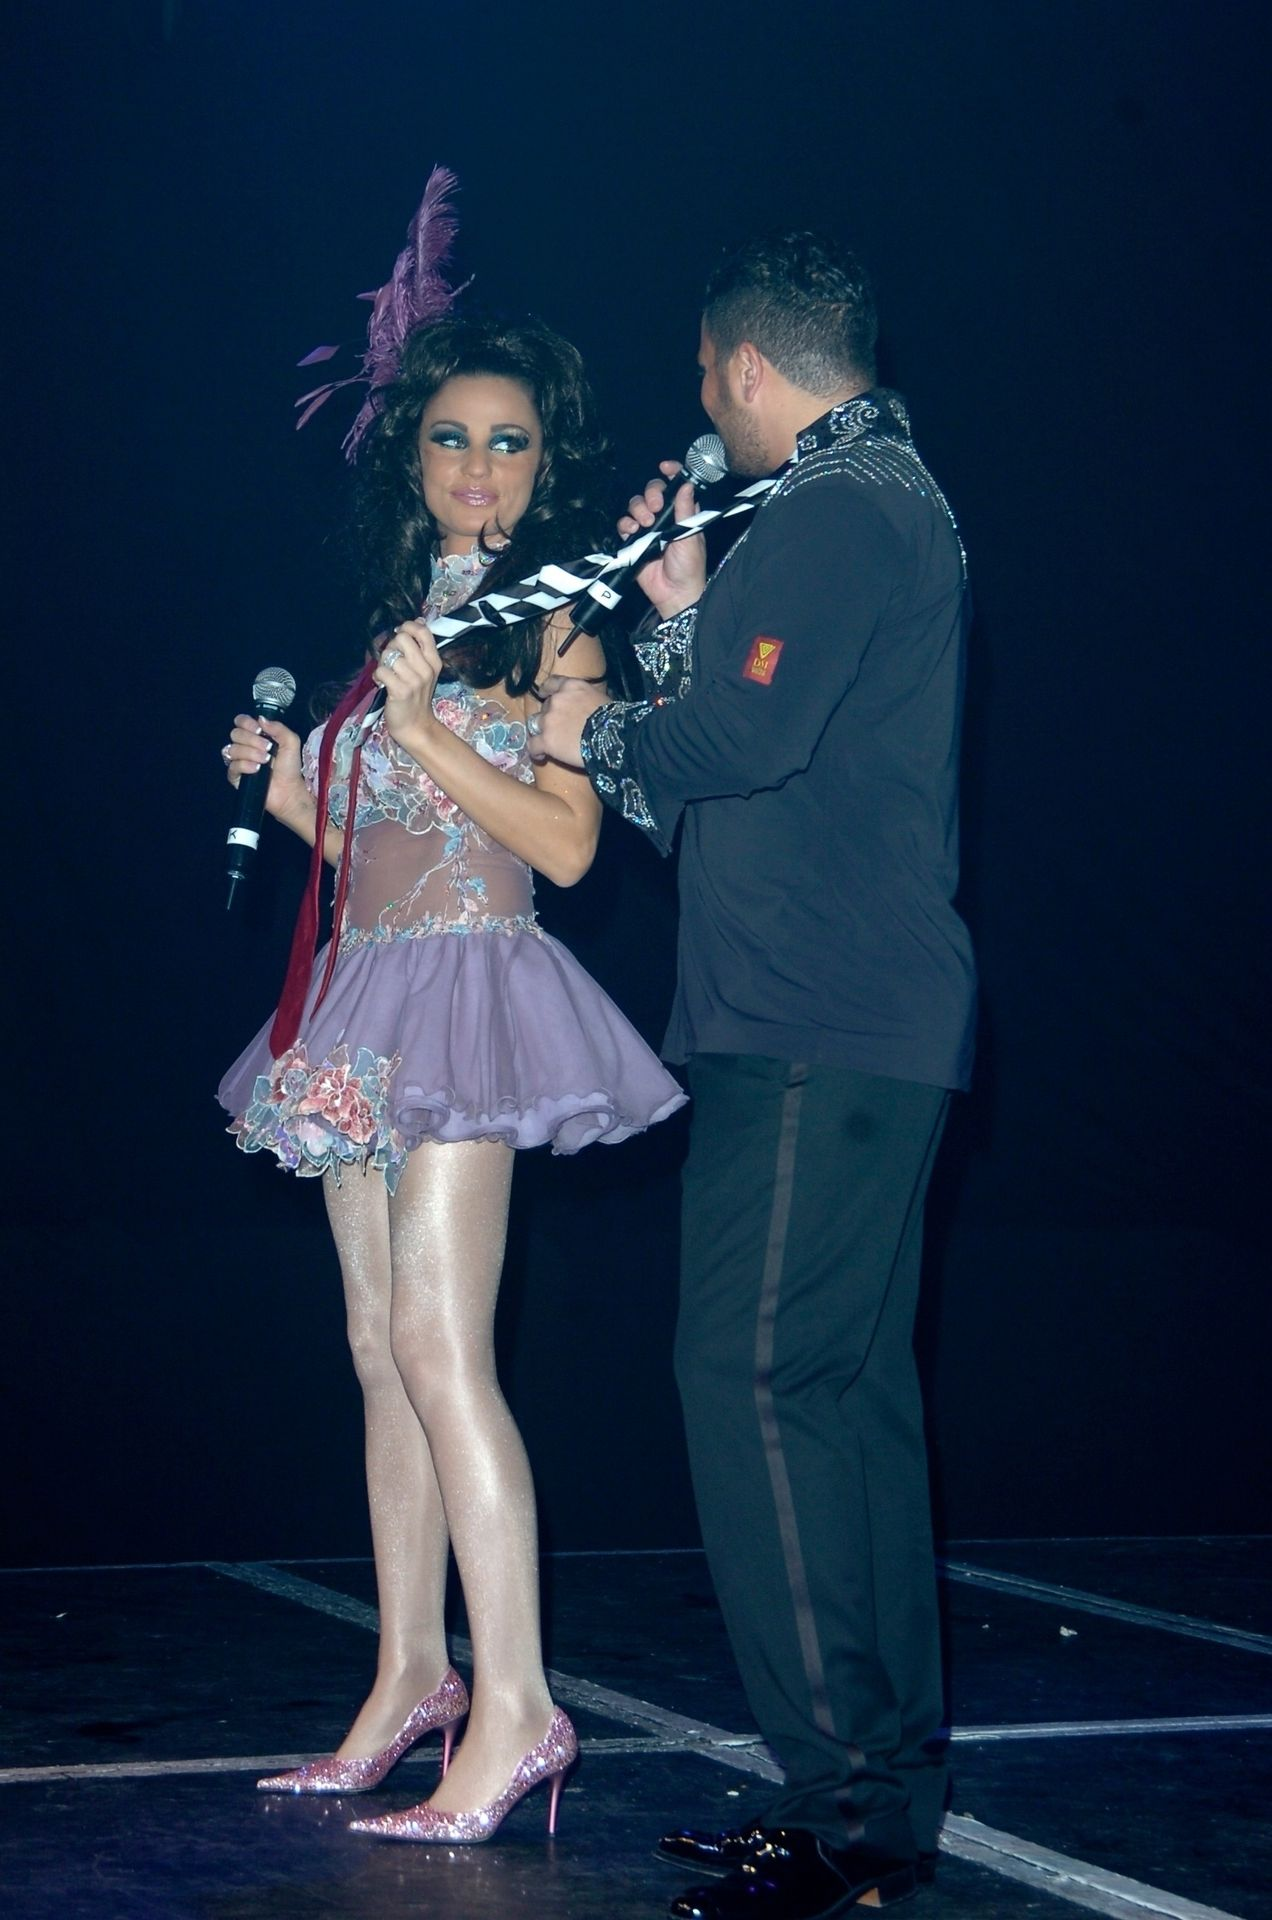 Katie Price & Peter Andre Perform At Gay Astoria In London 0015